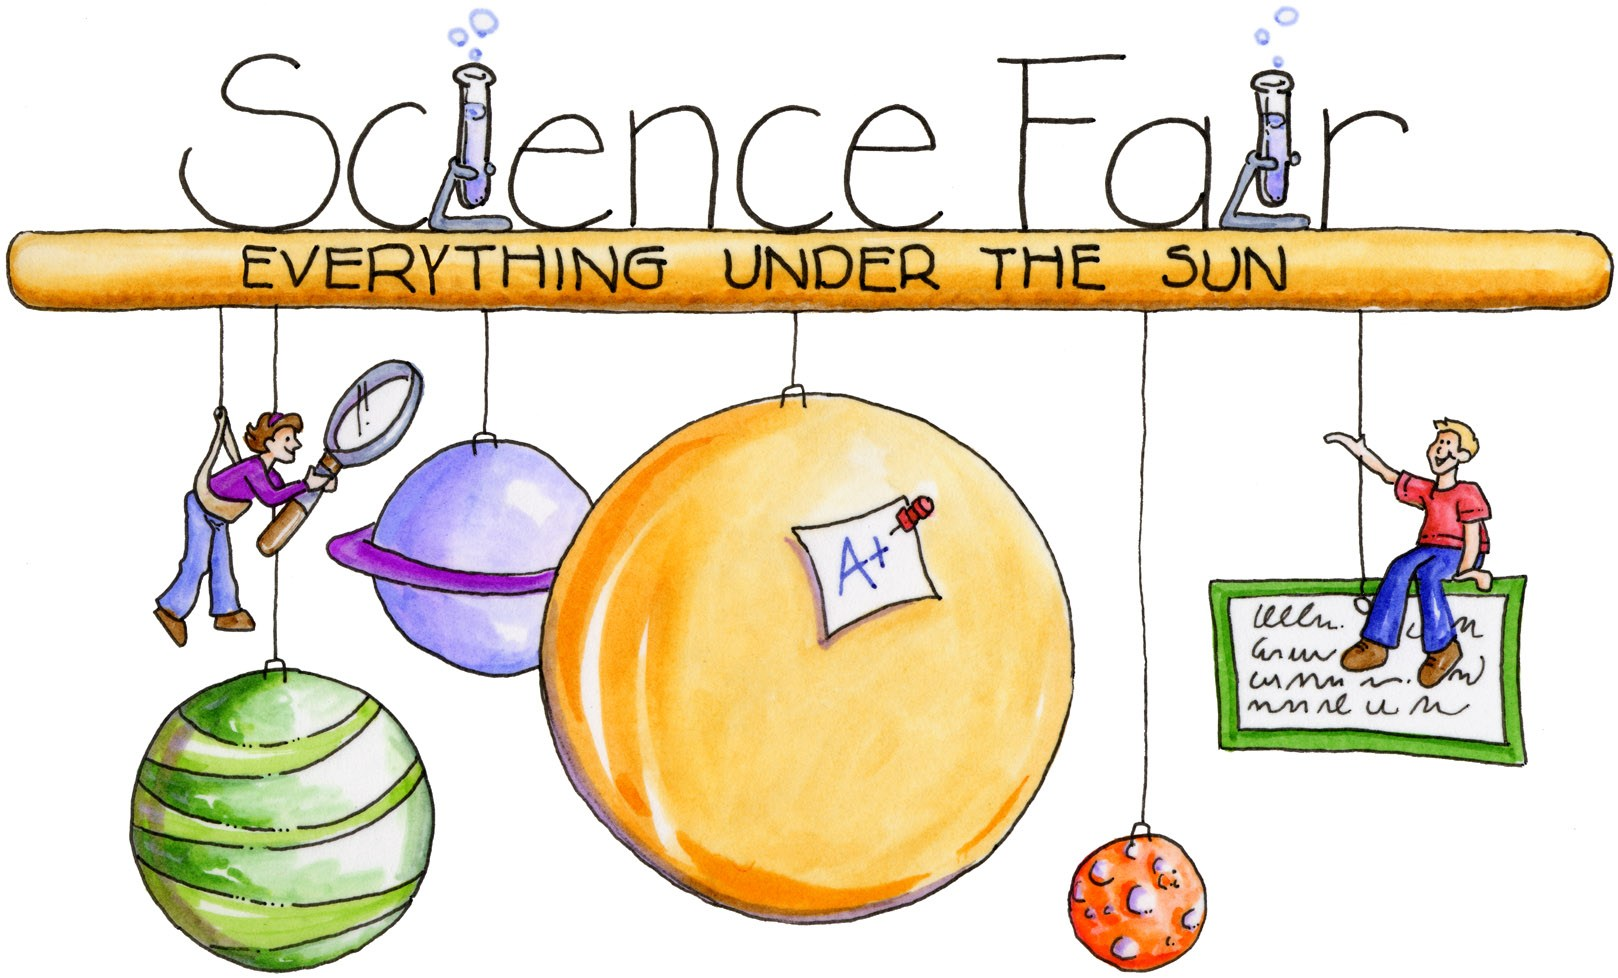 Free science fair clipart 5 » Clipart Portal.